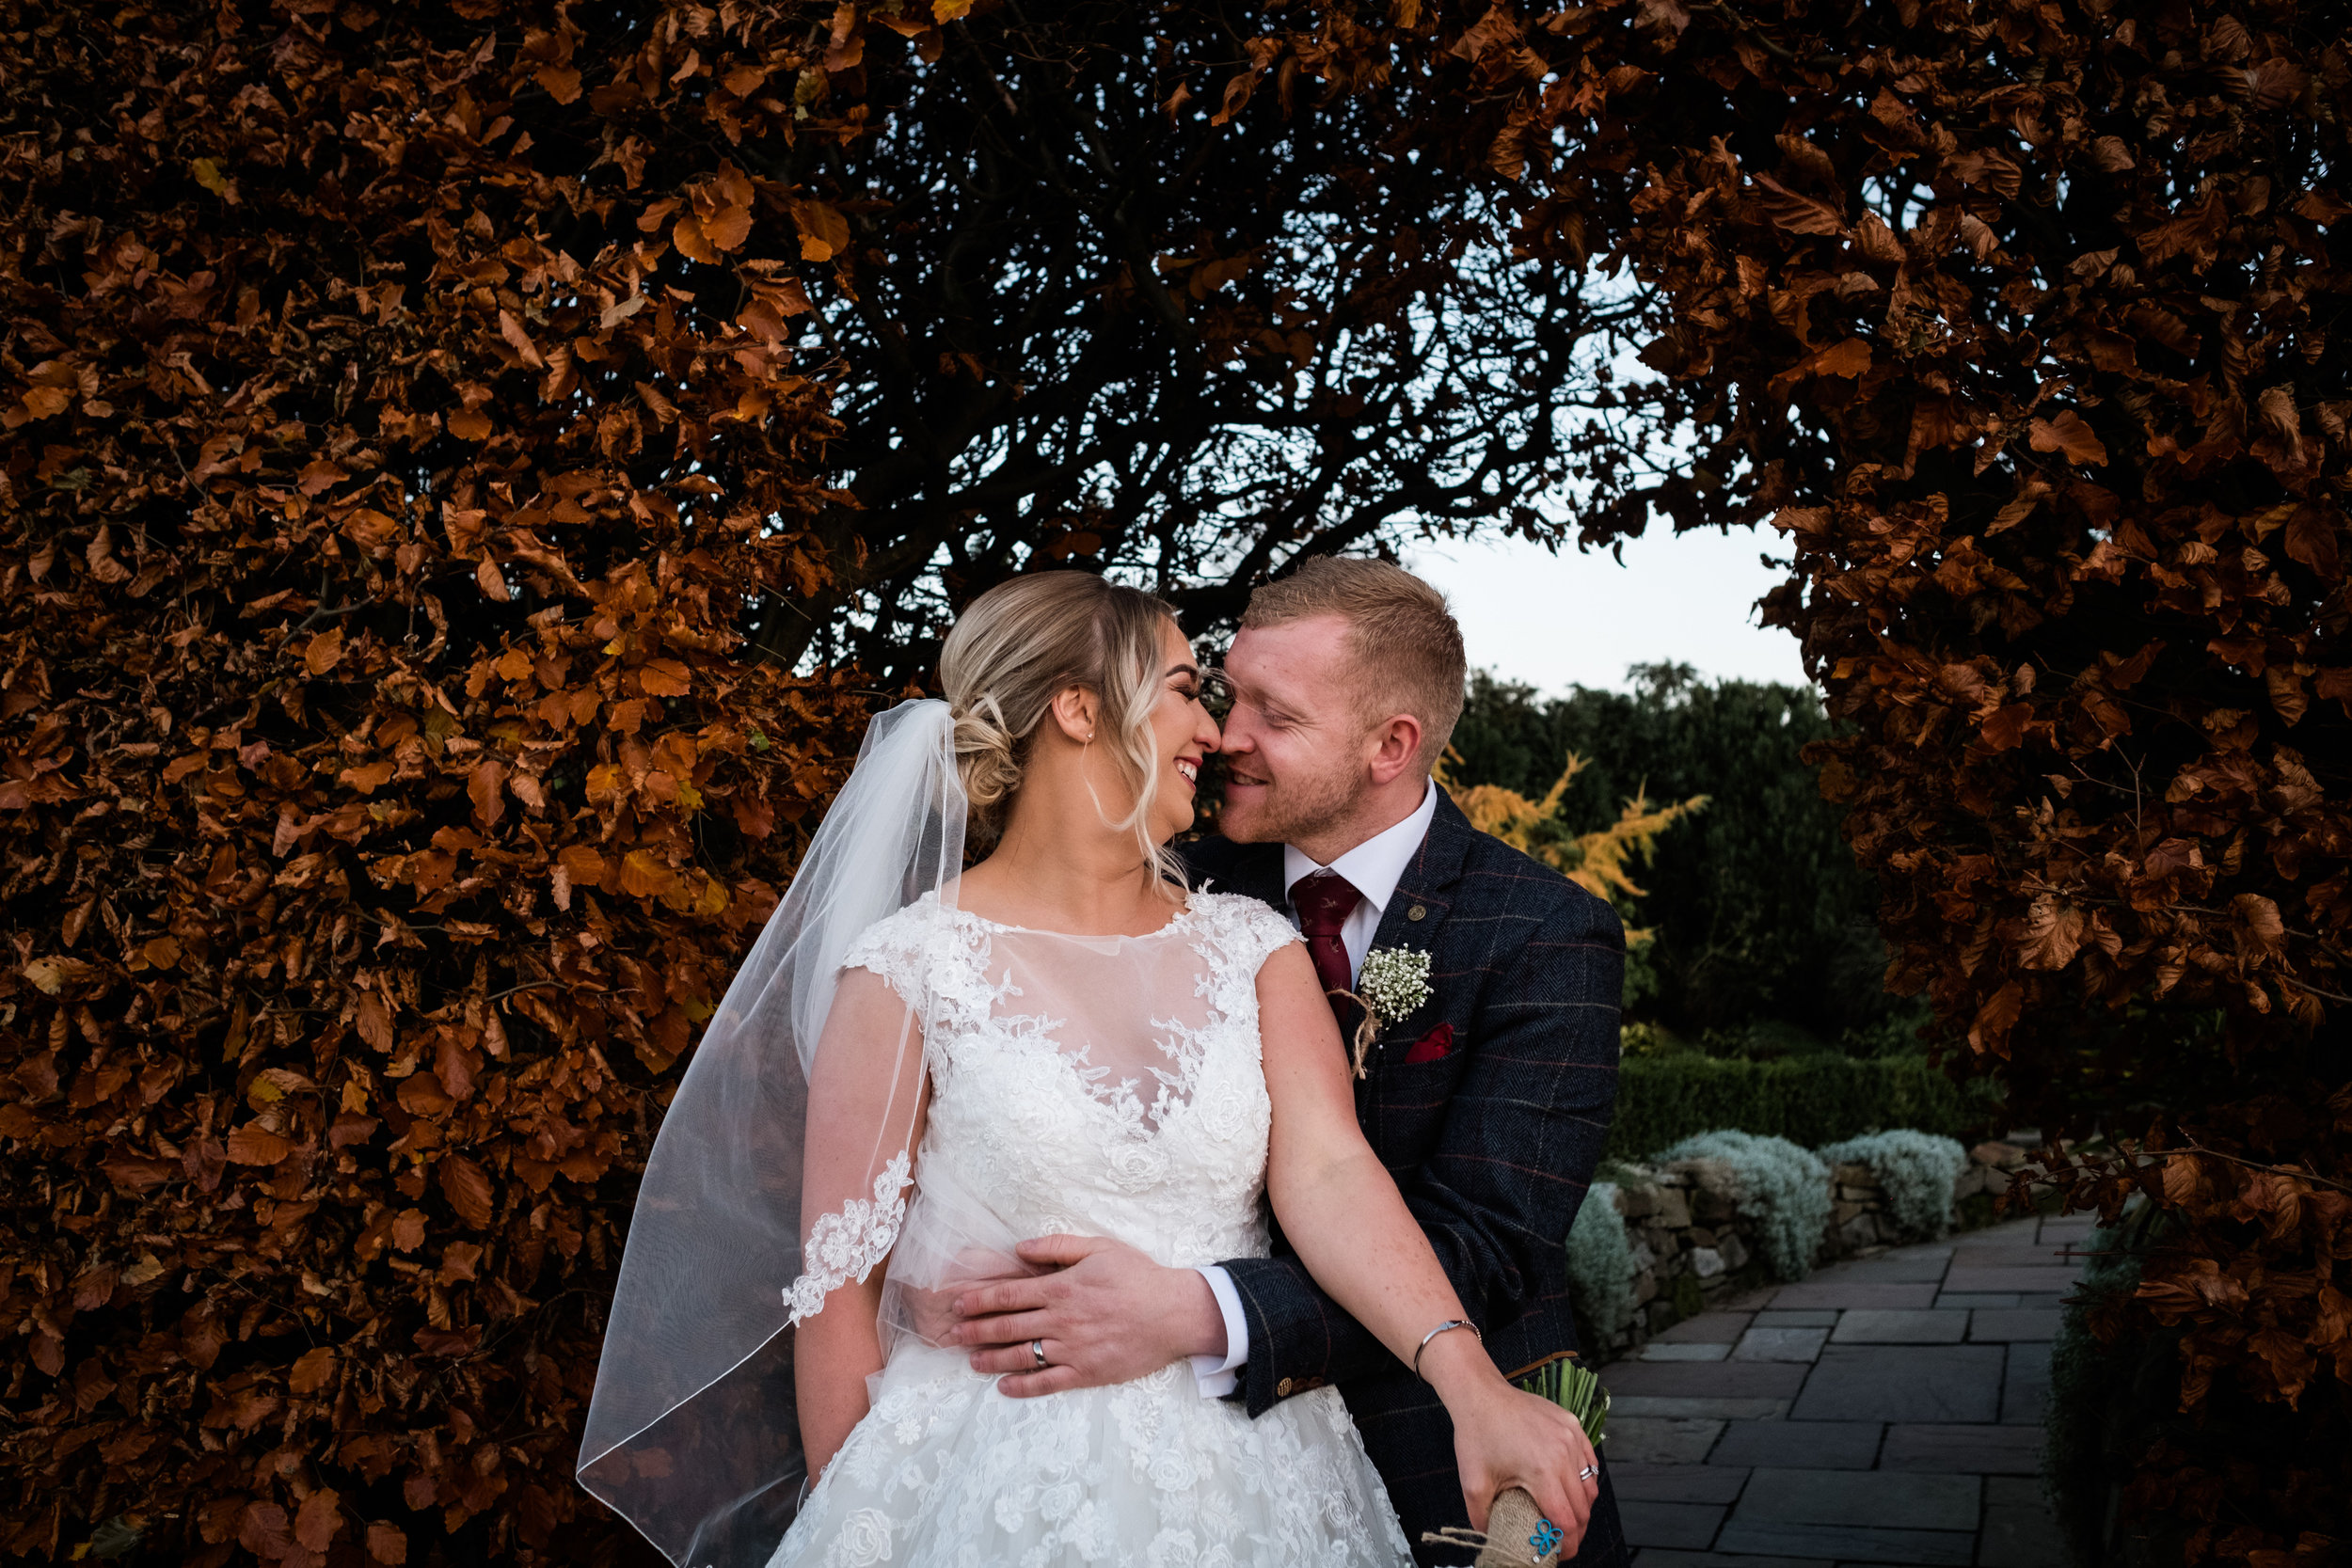 Autumn Wedding Photography at The Three Horseshoes, Blackshaw Moor, Staffordshire Moorlands - Jenny Harper-36.jpg